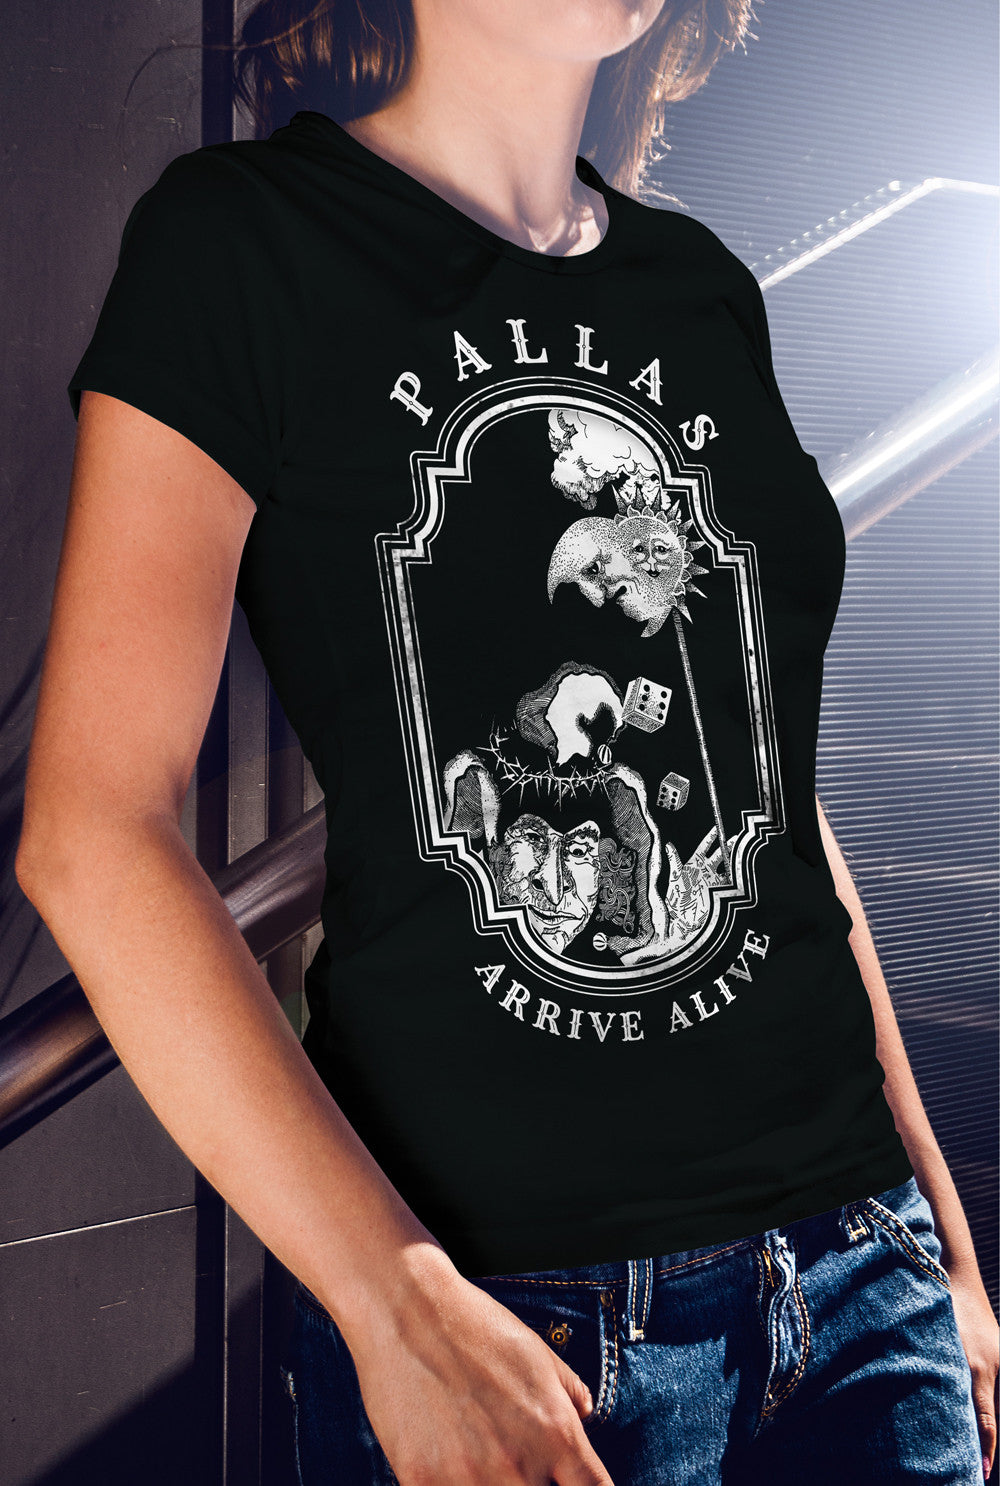 Pallas Arrive Alive  Alternate Design 1 Women's fitted T-shirt<p> In Black, Red and Purple Custom T Shirt by Lets Get Shirty Dot Com